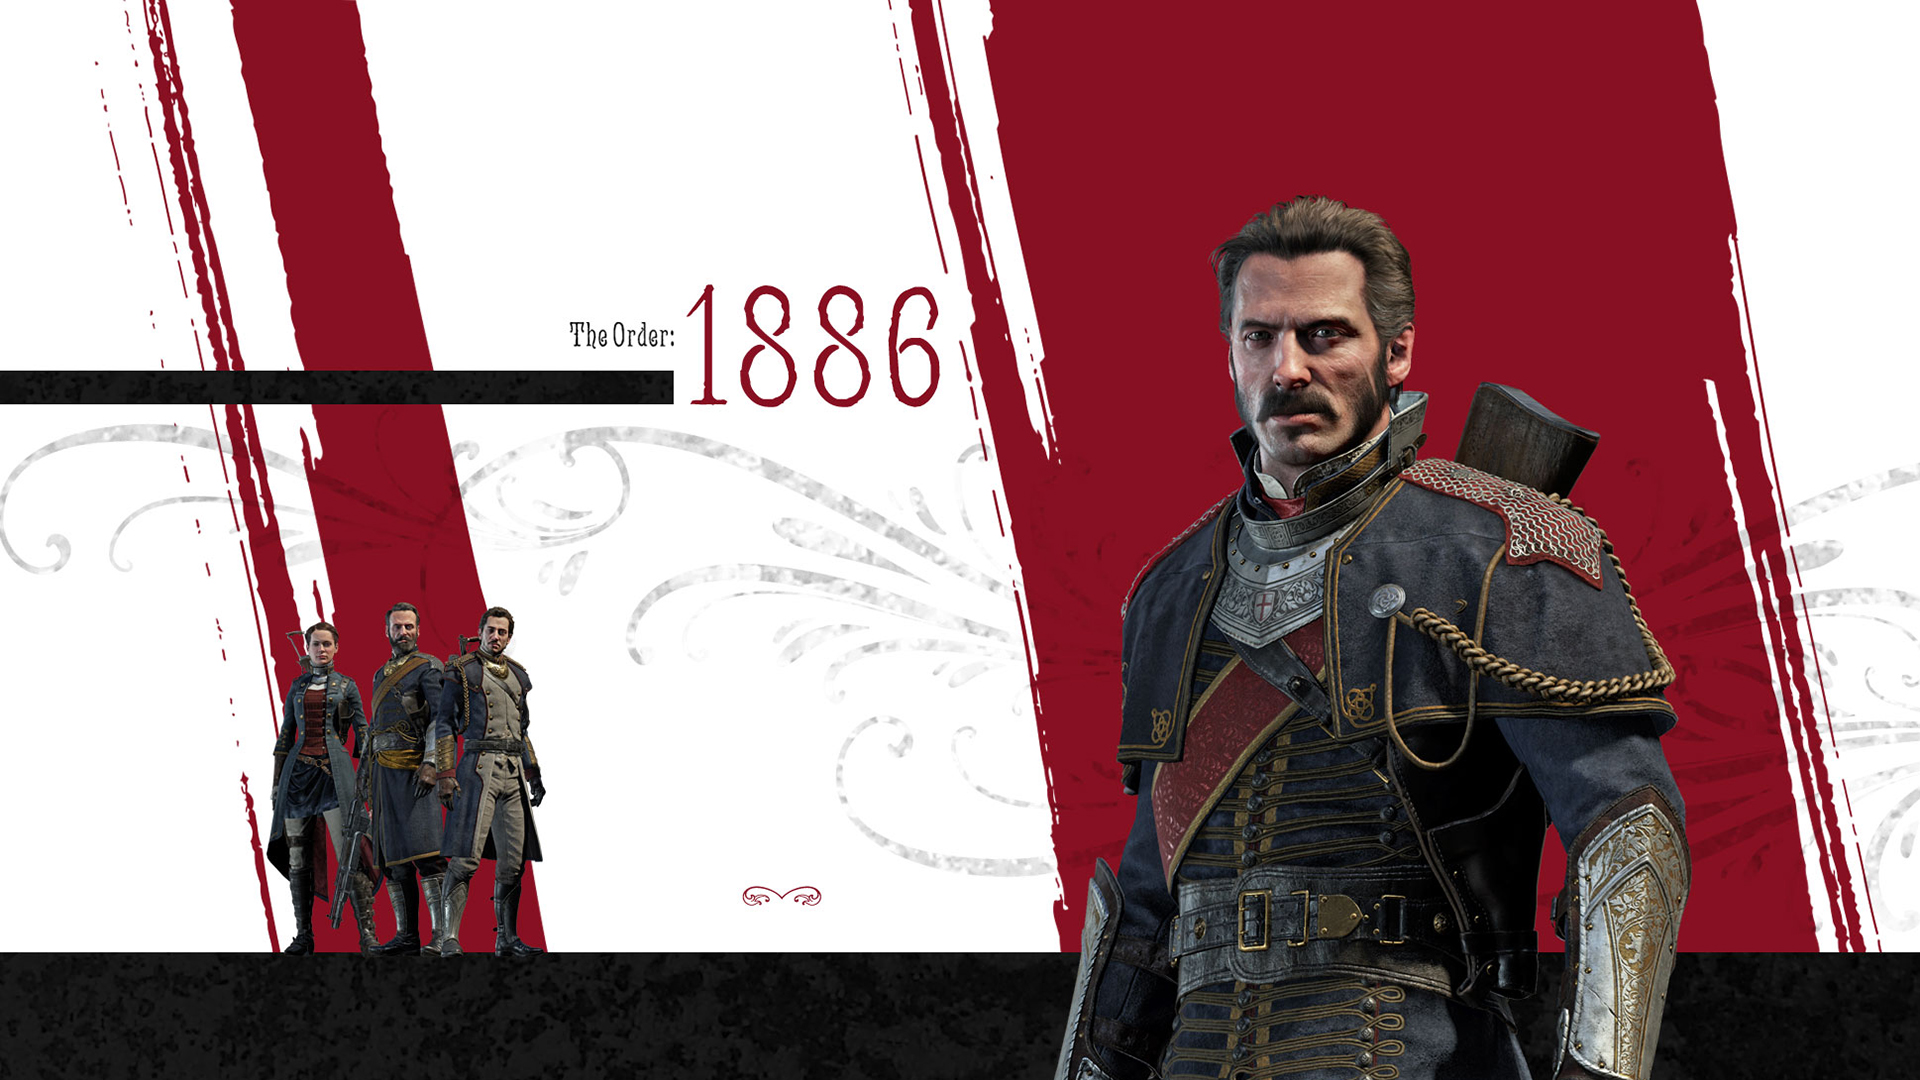 Арт к игре The Order: 1886